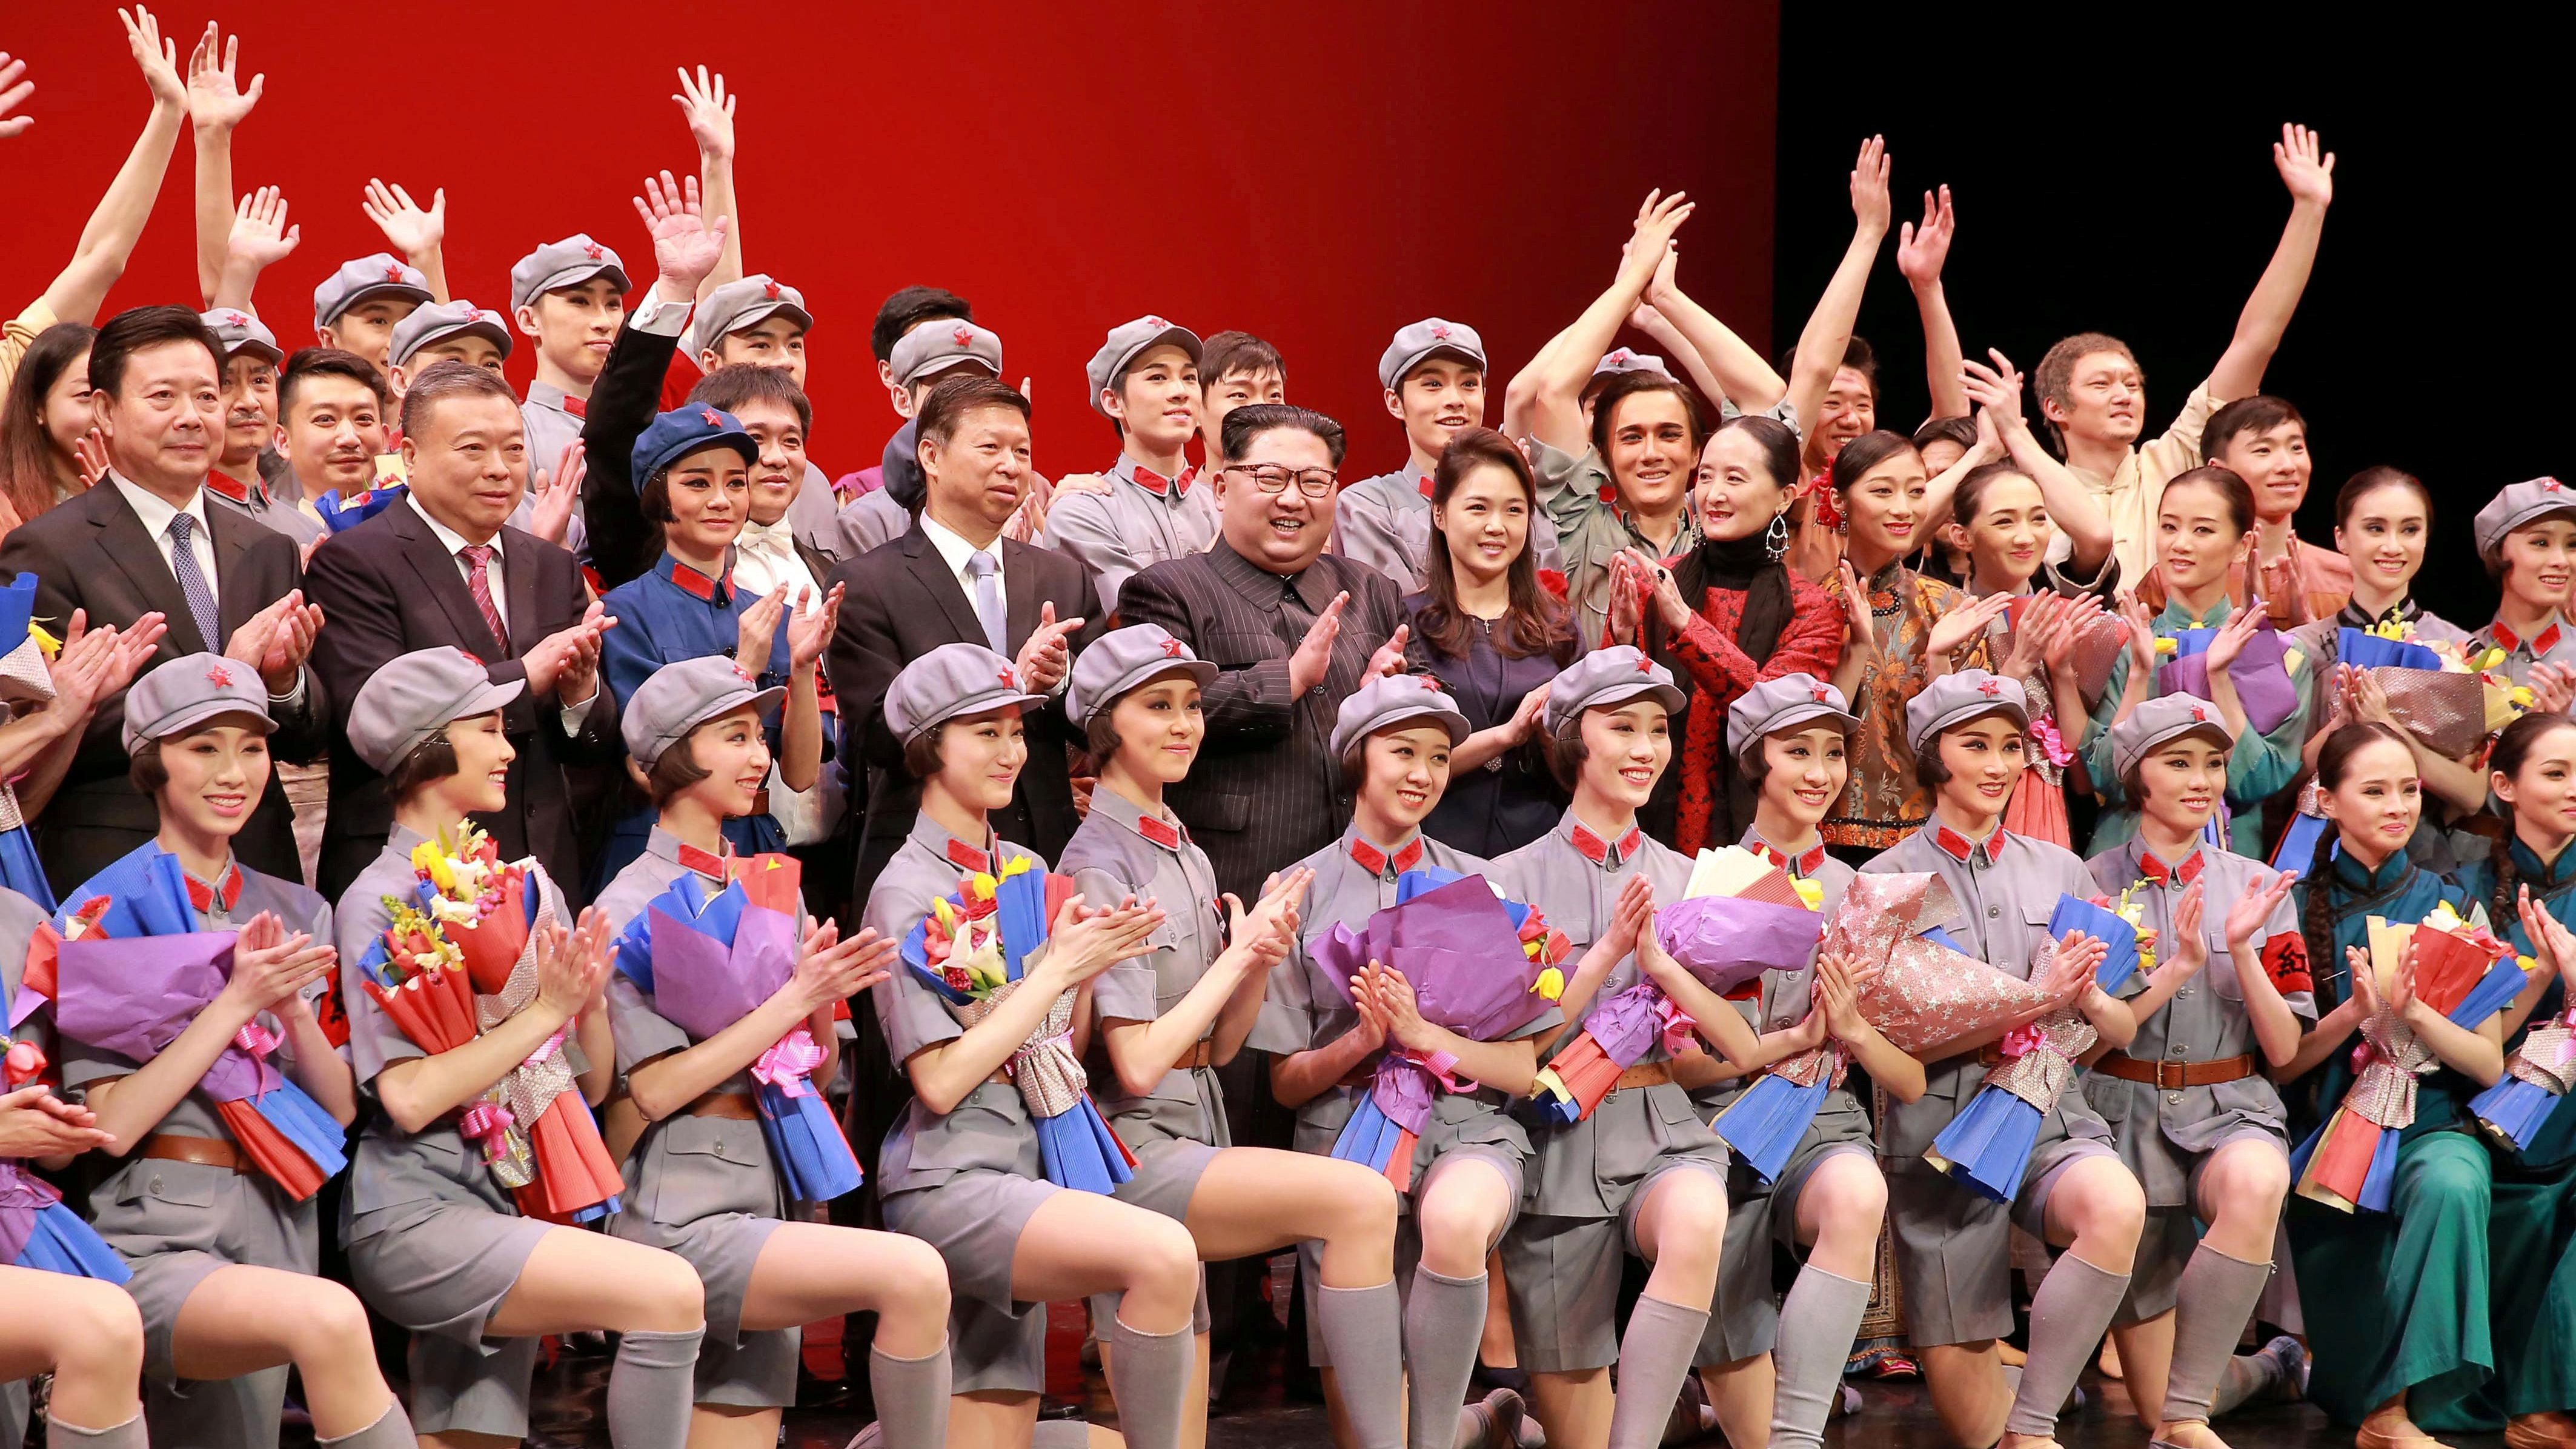 North Korean leader Kim Jong Un, his wife Ri Sol Ju and Song Tao, head of the International Department of Communist Party of China (CPC) Central Committee, applaud with ballet dancers in this undated photo released by North Korea's Korean Central News Agency (KCNA) in Pyongyang April 17, 2018.